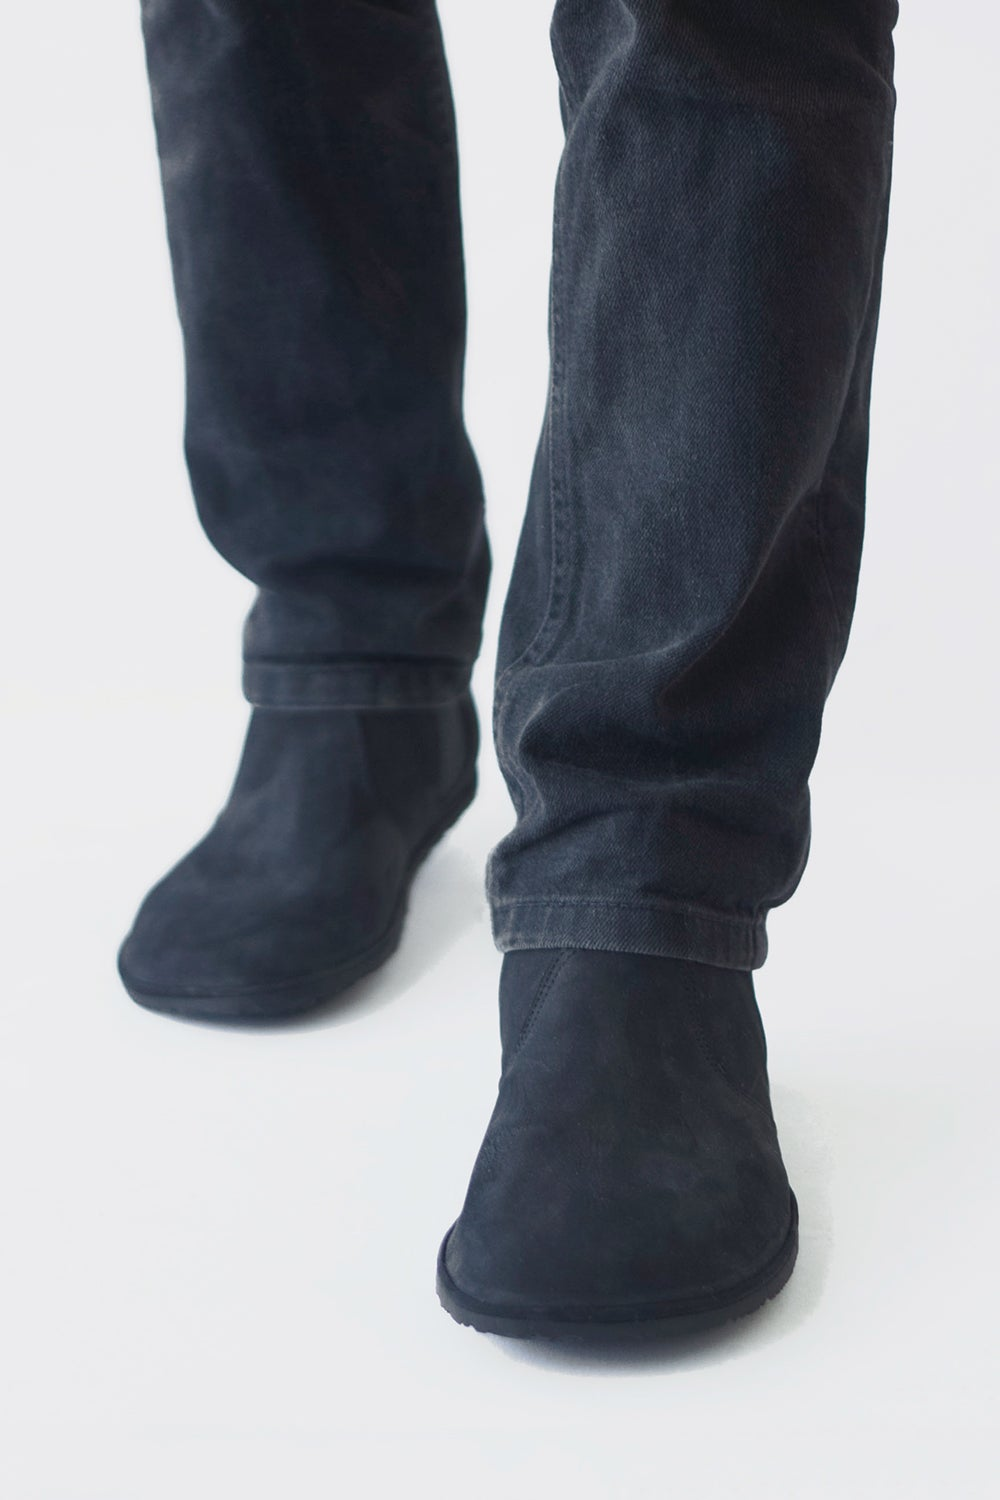 Image of Chelsea boots in Black nubuck leather